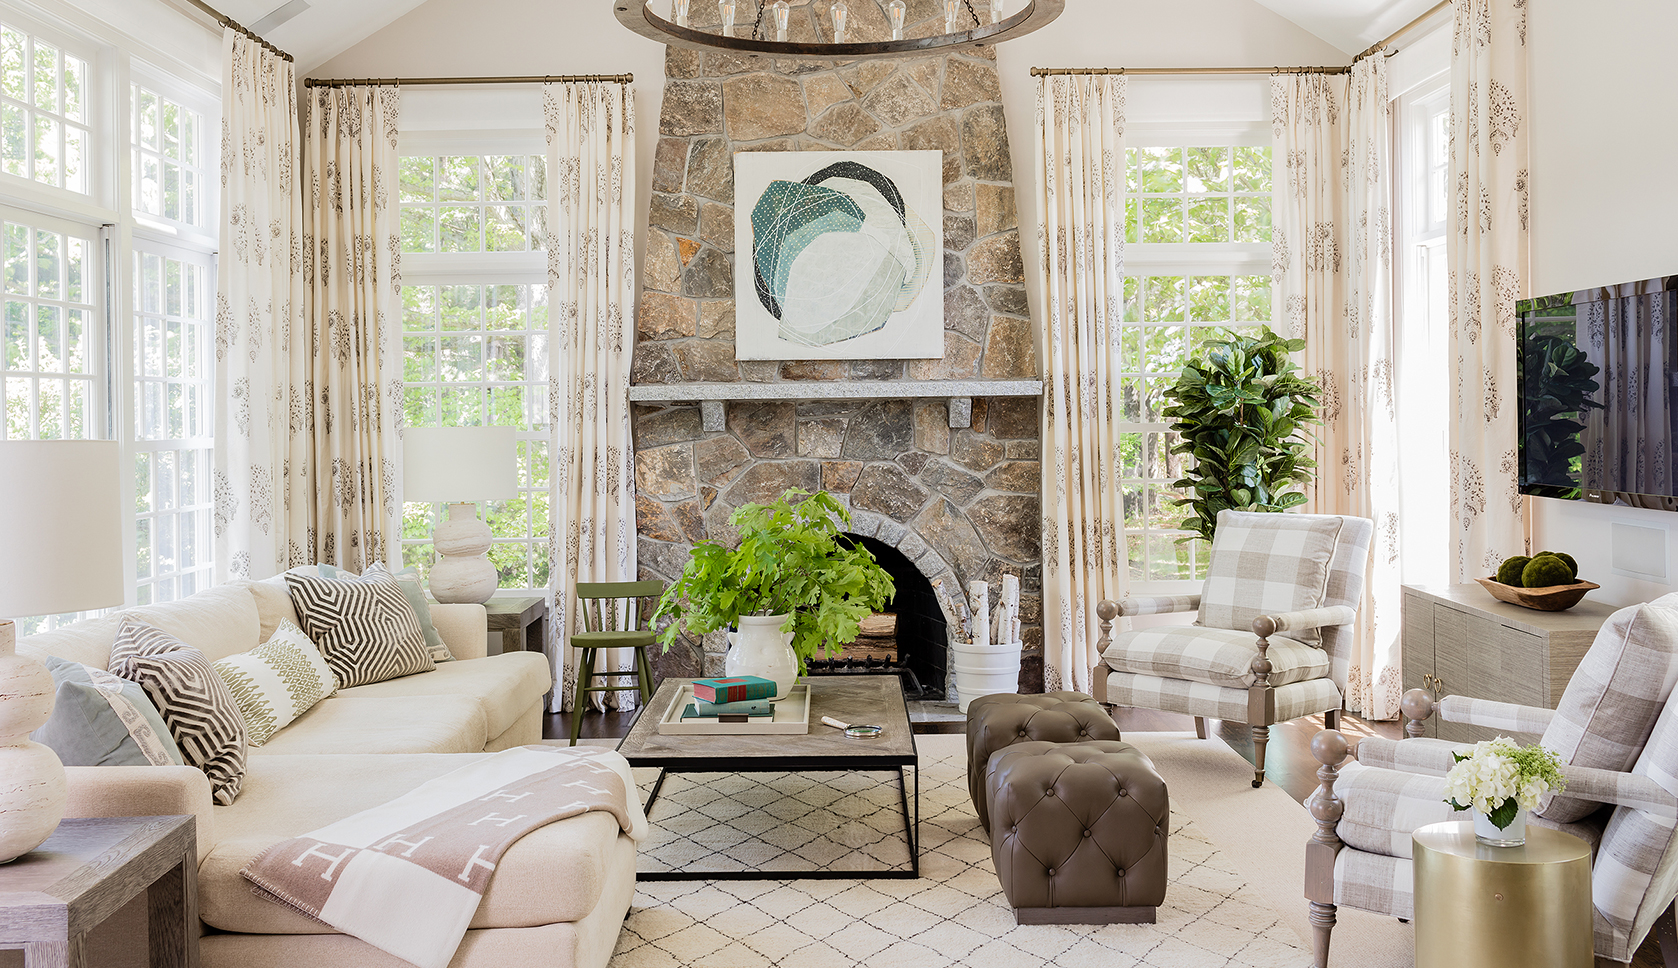 help me decorate my living room online renaissance style living room Decorating - May 23, 2019 Elements of Family Style: Elegant Spaces for  Everyday Life by Erin Gates